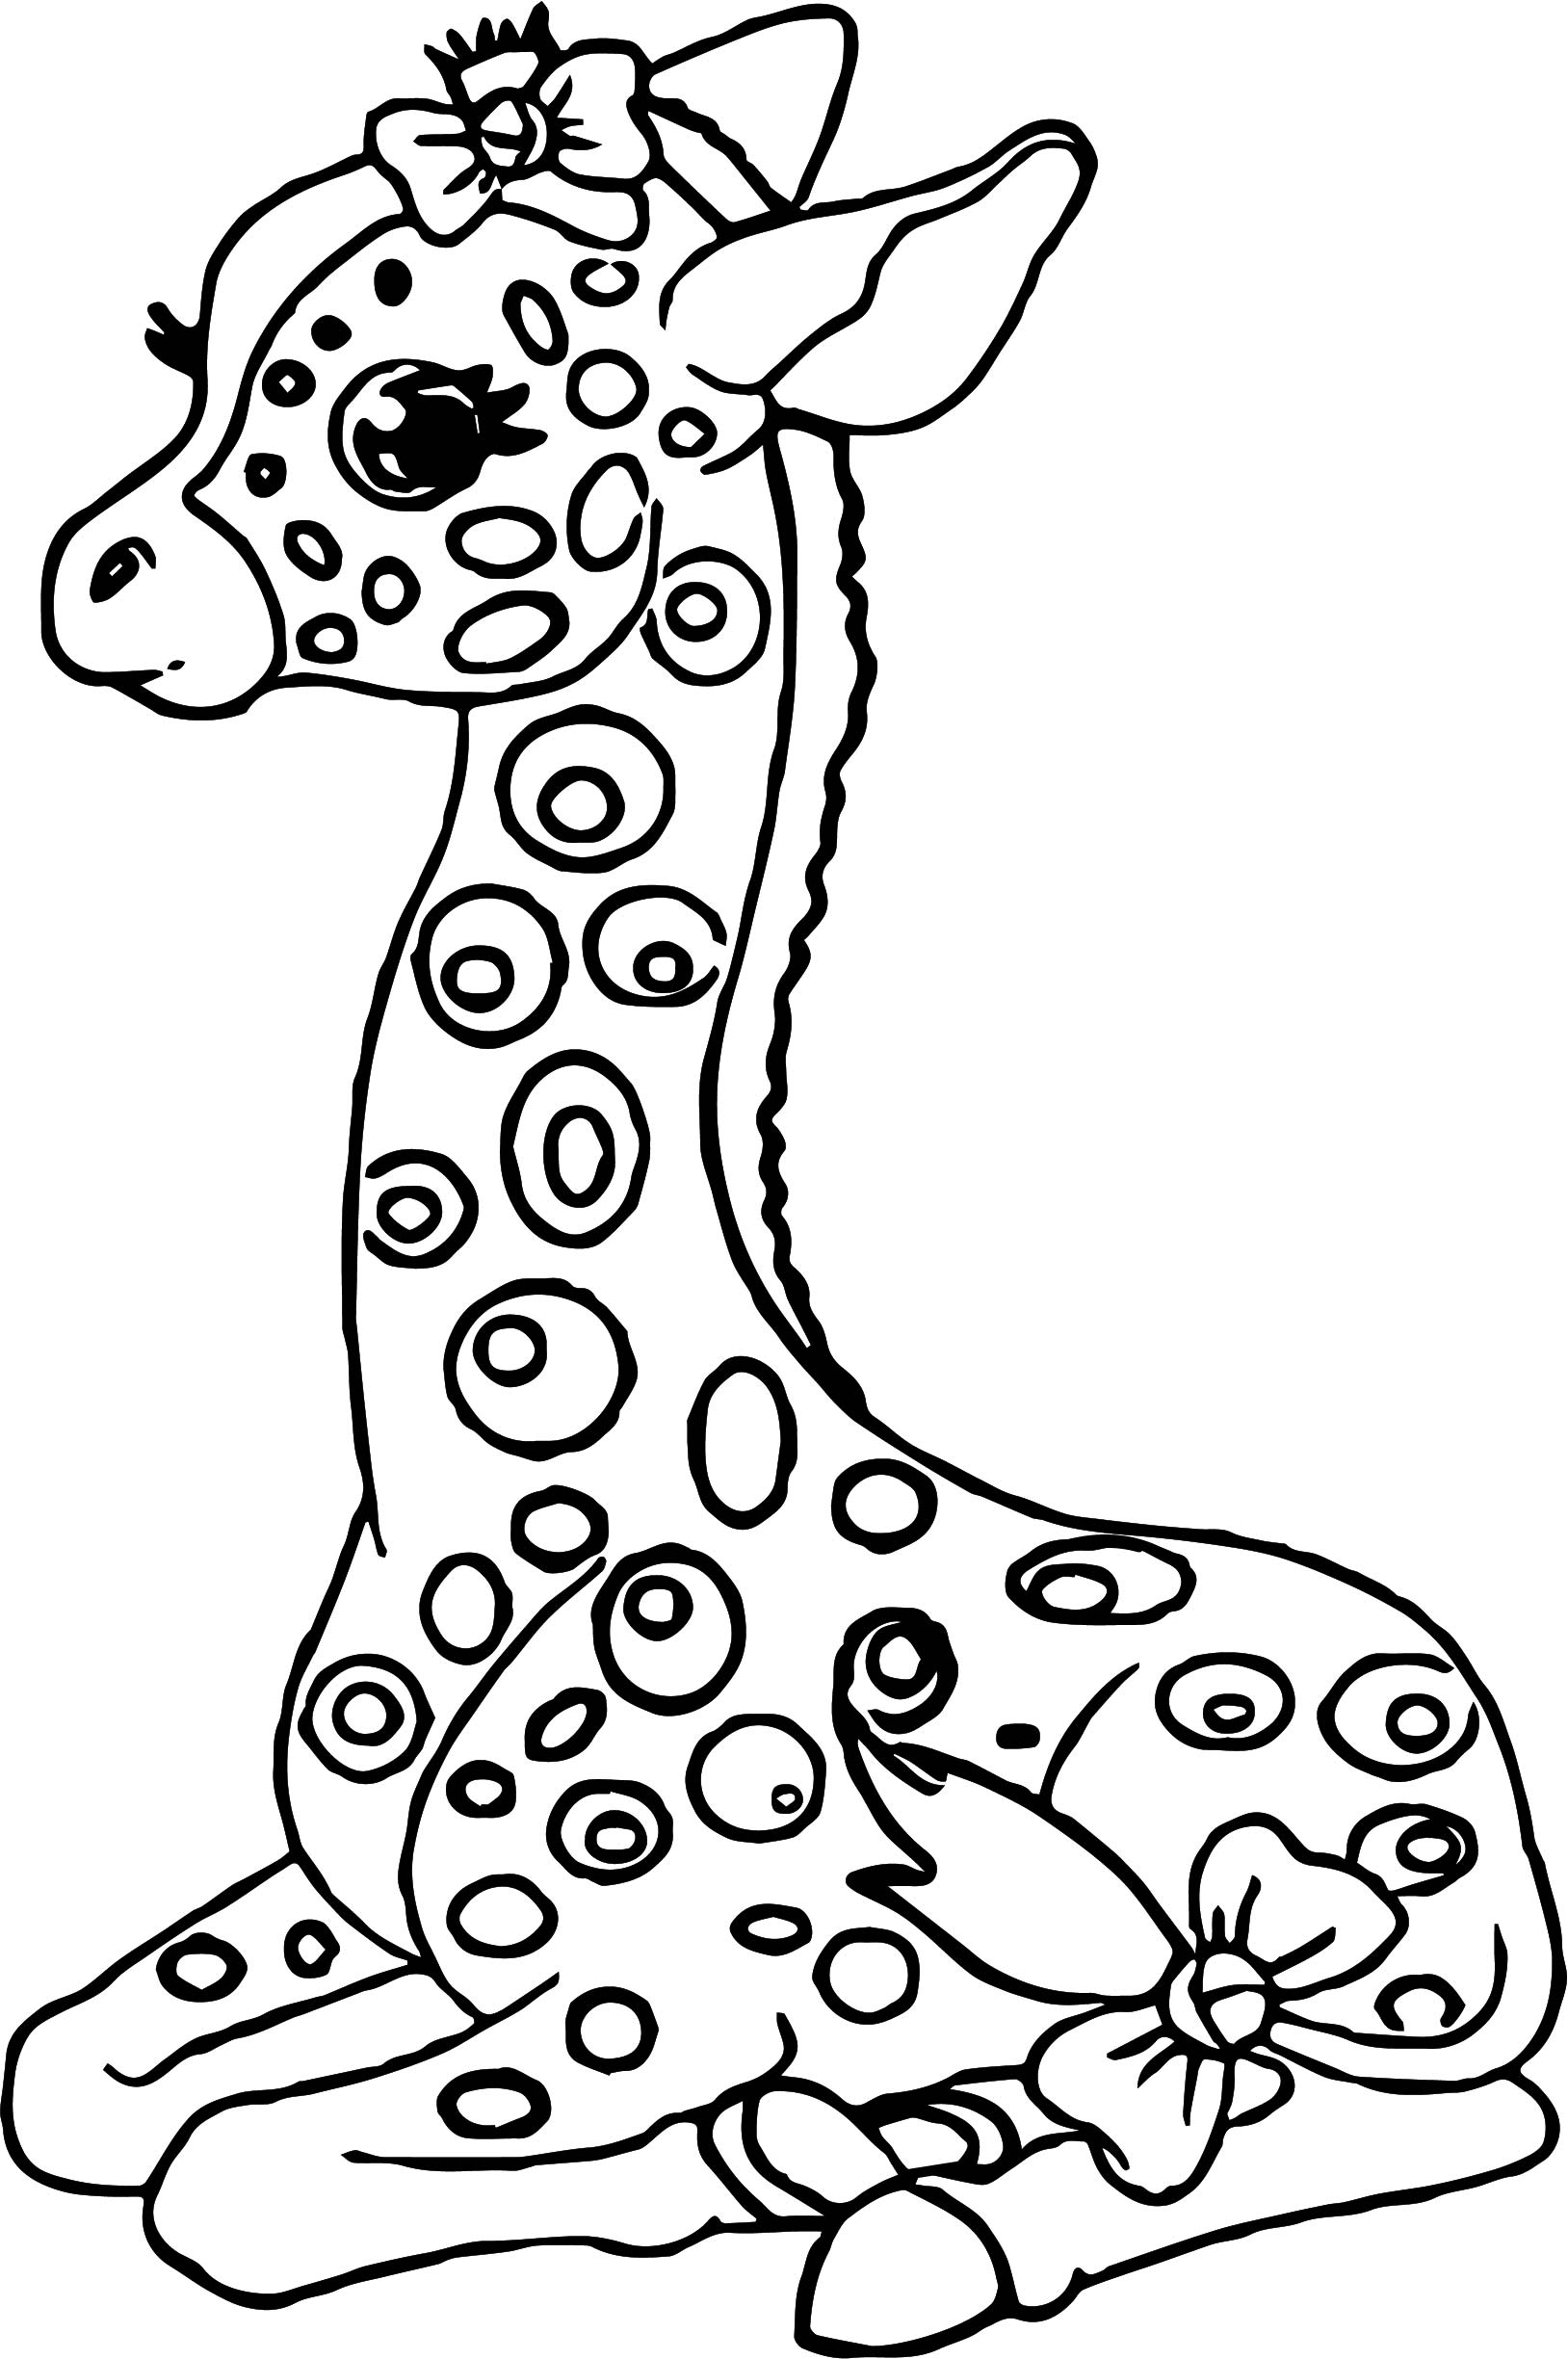 Staying Kids Girl Giraffe Coloring Page